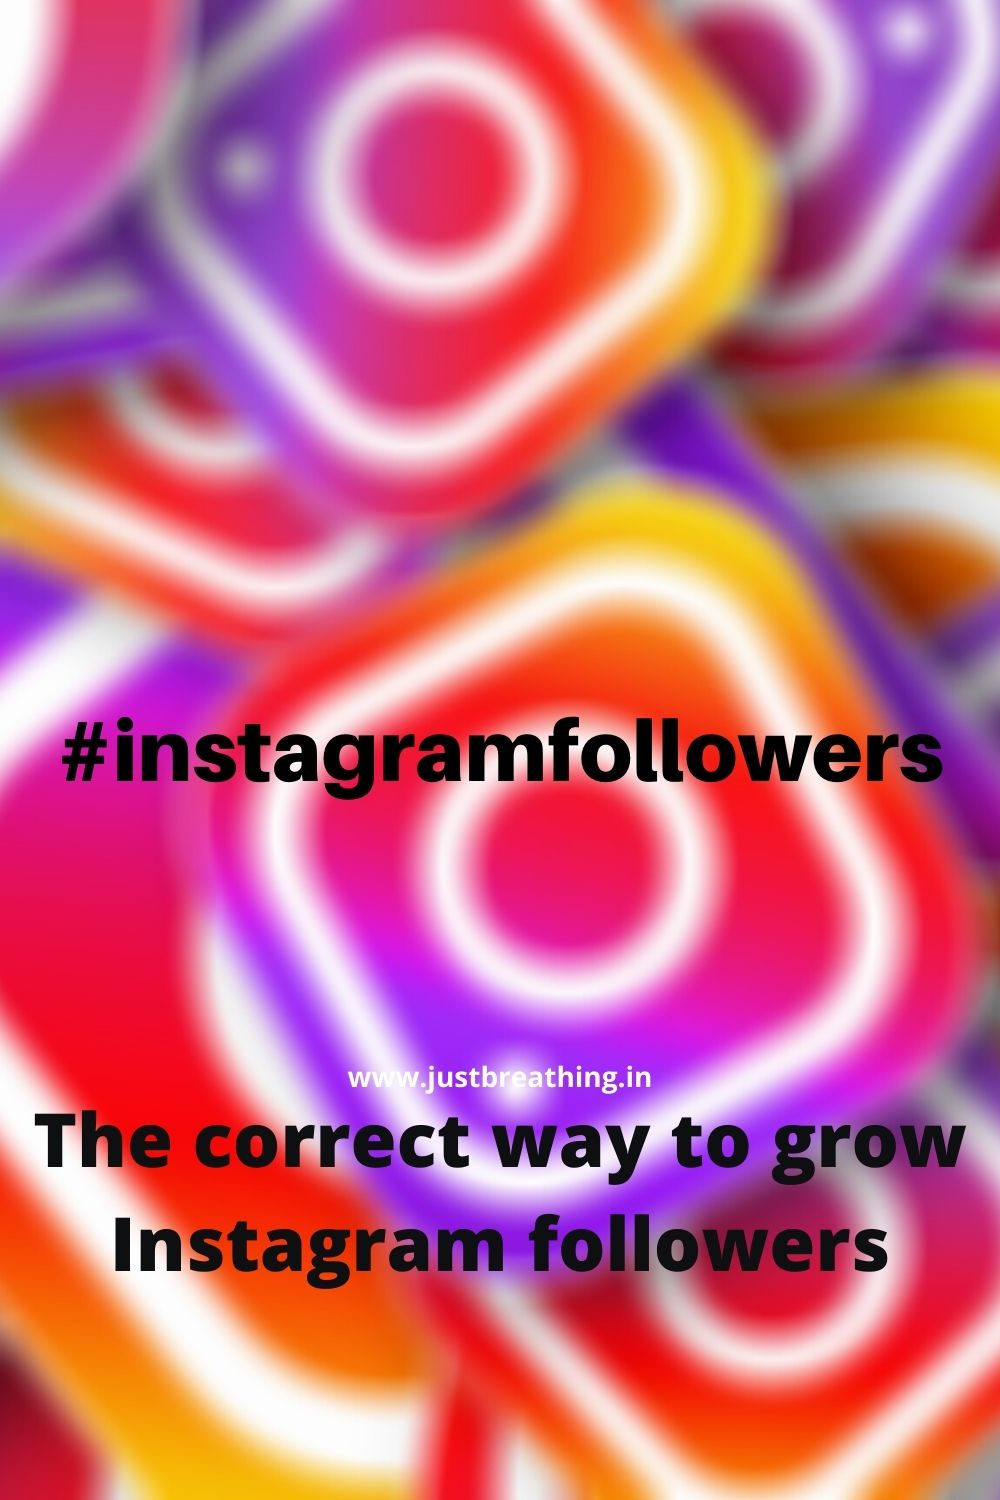 The correct way to grow Instagram followers - #instagramfollowers Hashtags of Instagram followers